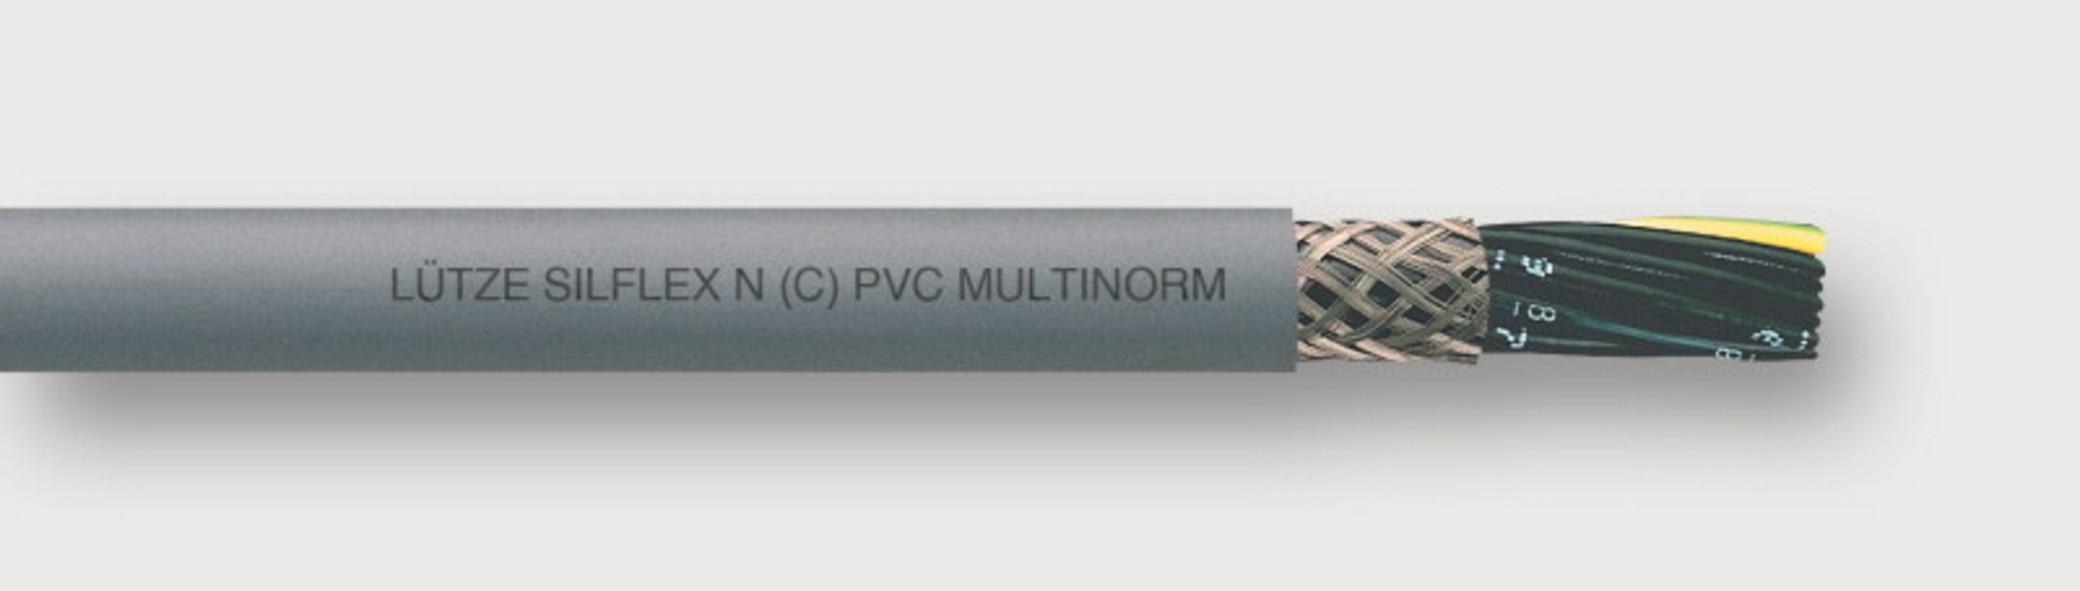 109802 - LÜTZE SILFLEX® N (C) PVC MULTINORM With approvals for Europe and